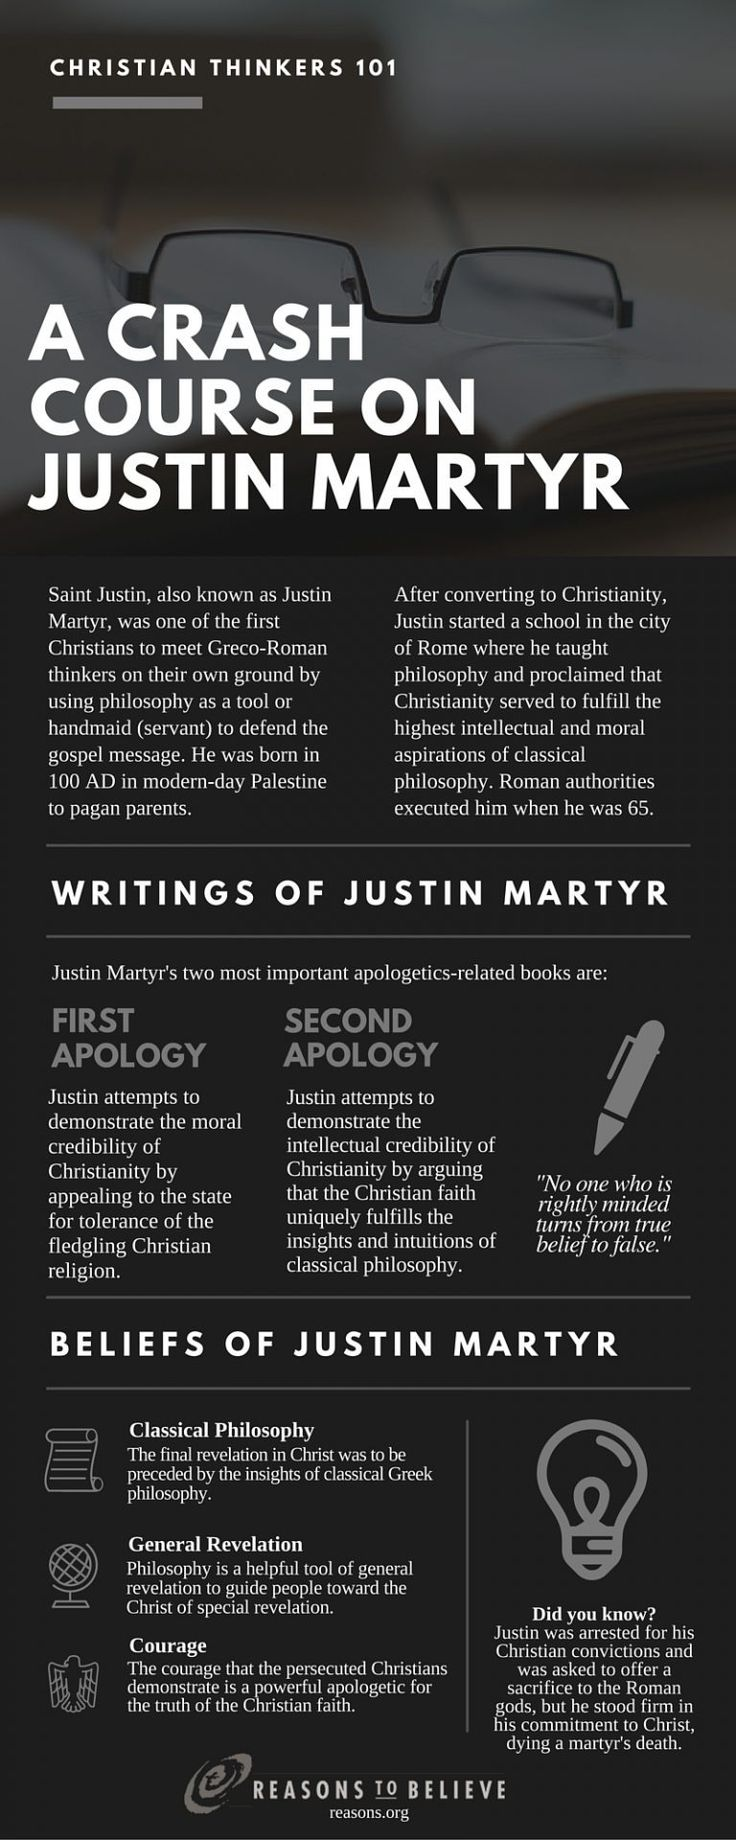 Saint of the Day – 1 June – St Justin also known as St Justin Martyr –  Martyr, first Christian Philosopher, Apologist, Orator, Teacher, Writer, Missionary (c100 – beheaded in 165 at Rome, Italy.  His relics in the Capuchin church, Romeat Nablus Palestine) – Patron of apologists, lecturers, orators, speakers, philosophers.  Attributes ax, pen, sword......